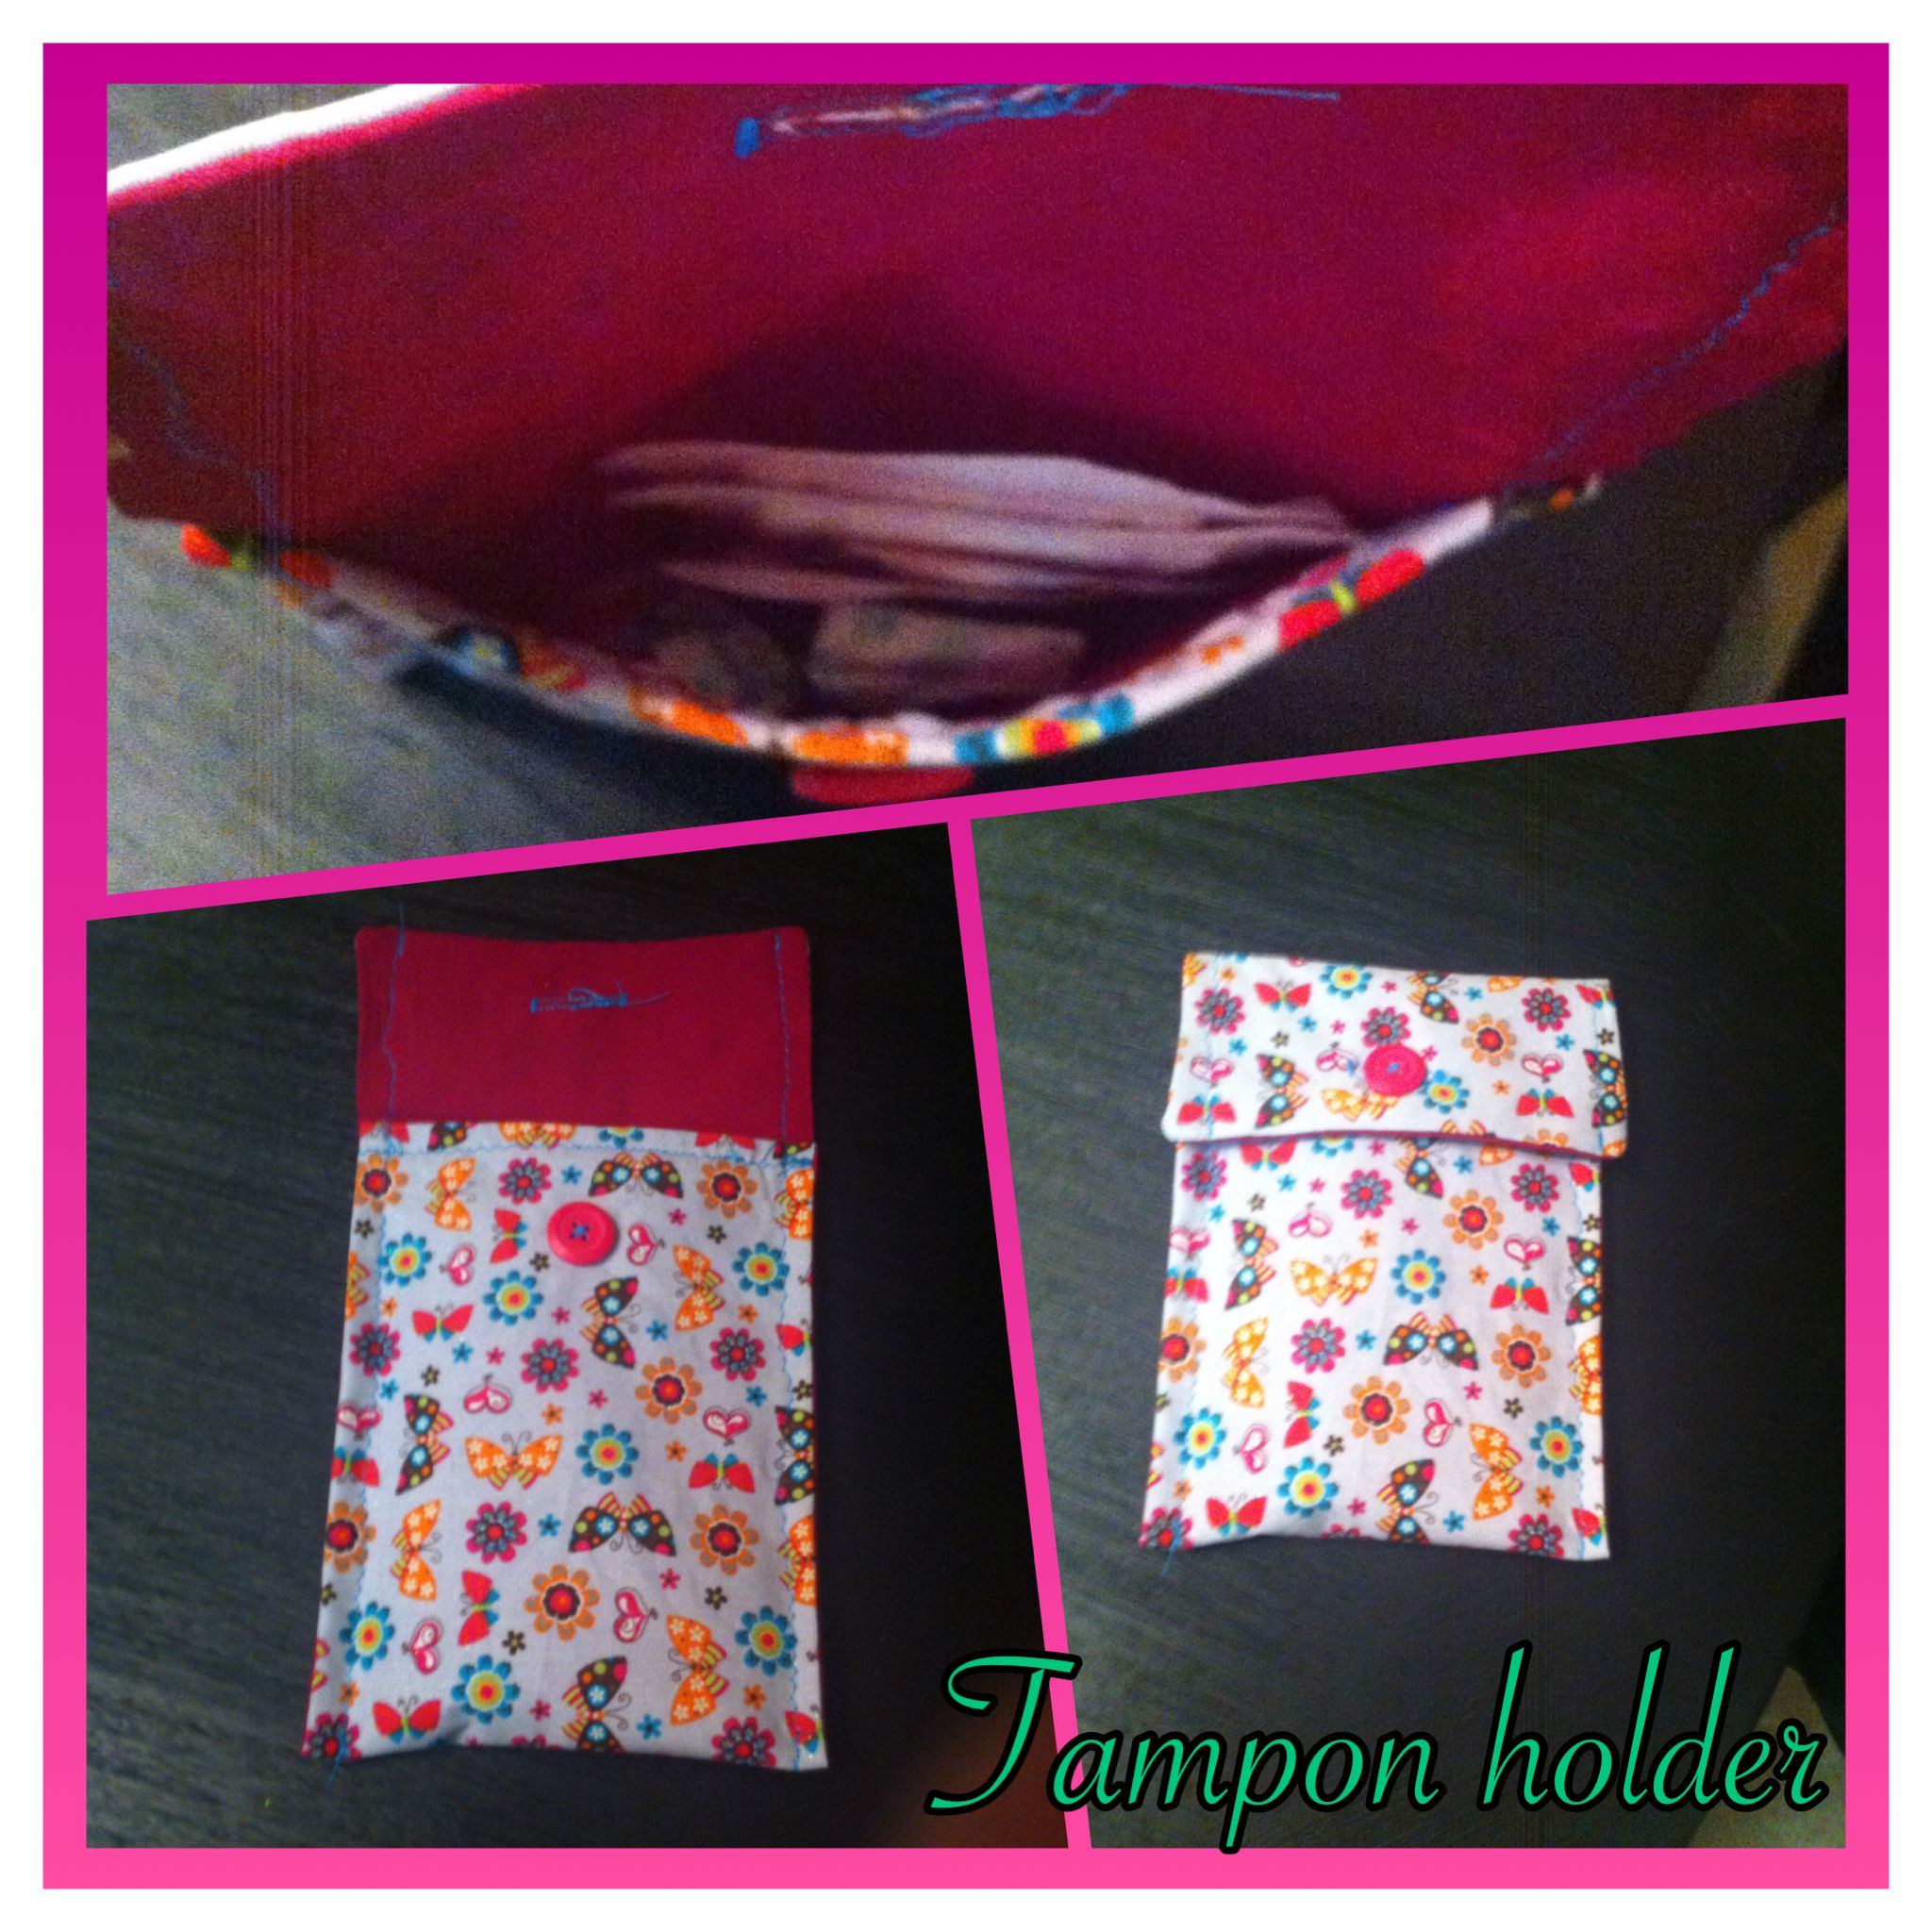 Diy Tampon Holder Cute And Functional Can Hold Tampons Liners Pads Includes On Hole For Secure Closure Great Purse Gym Bag Etc